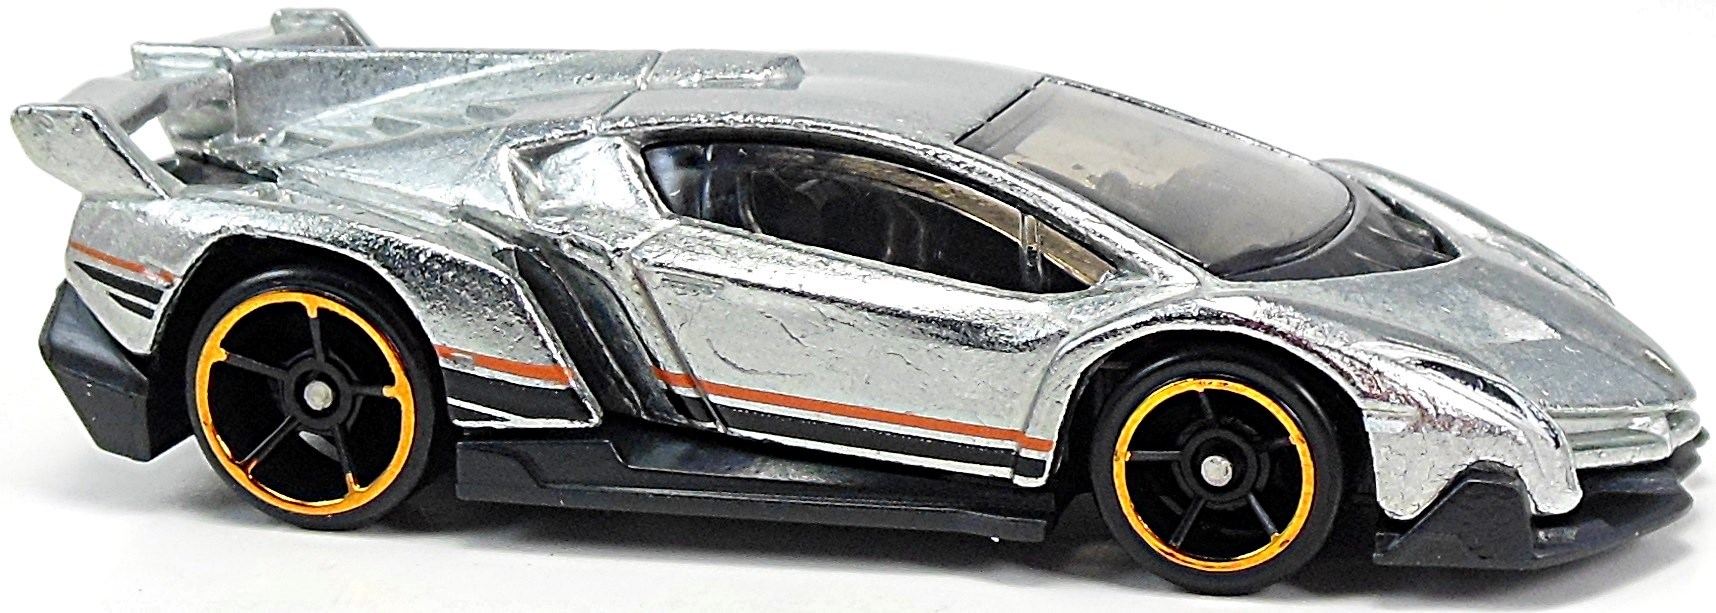 lamborghini veneno black and orange. d unpainted as c orange and black stripes on sides os5bkorrim mal hw workshop u2013 thrill racers 189 walmart excl 2 2015 5 lamborghini veneno g